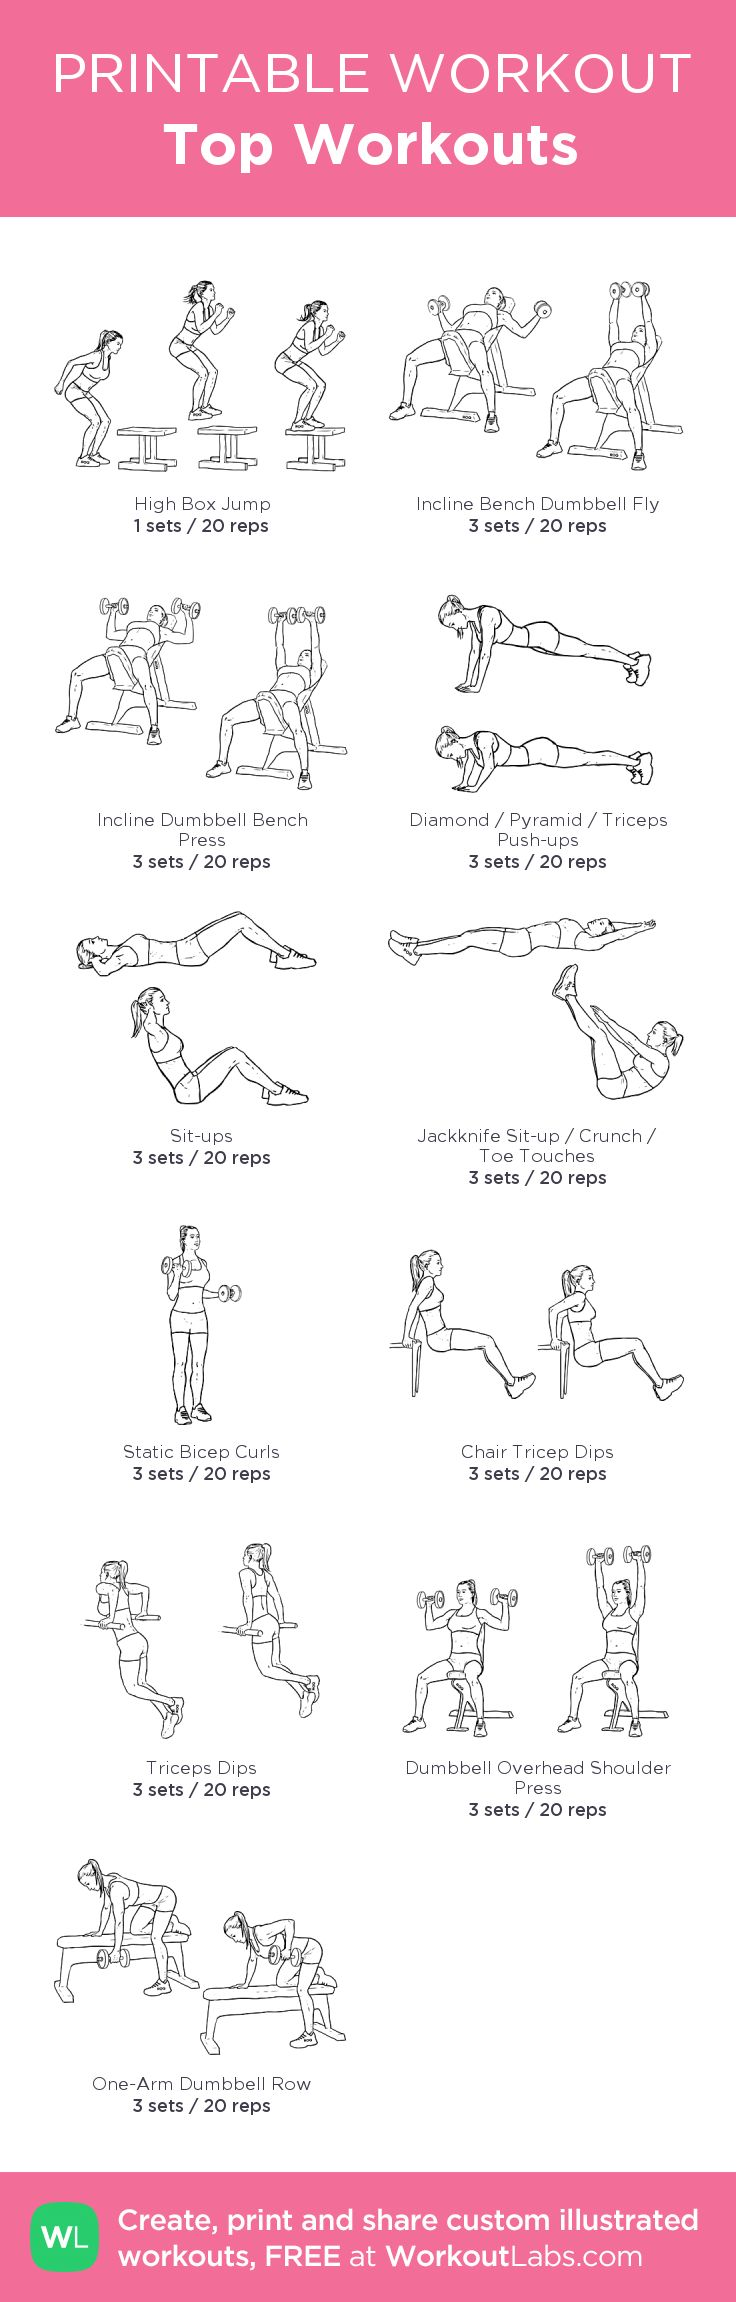 Top Workouts:my visual workout created at WorkoutLabs.com • Click through to customize and download as a FREE PDF! #customworkout